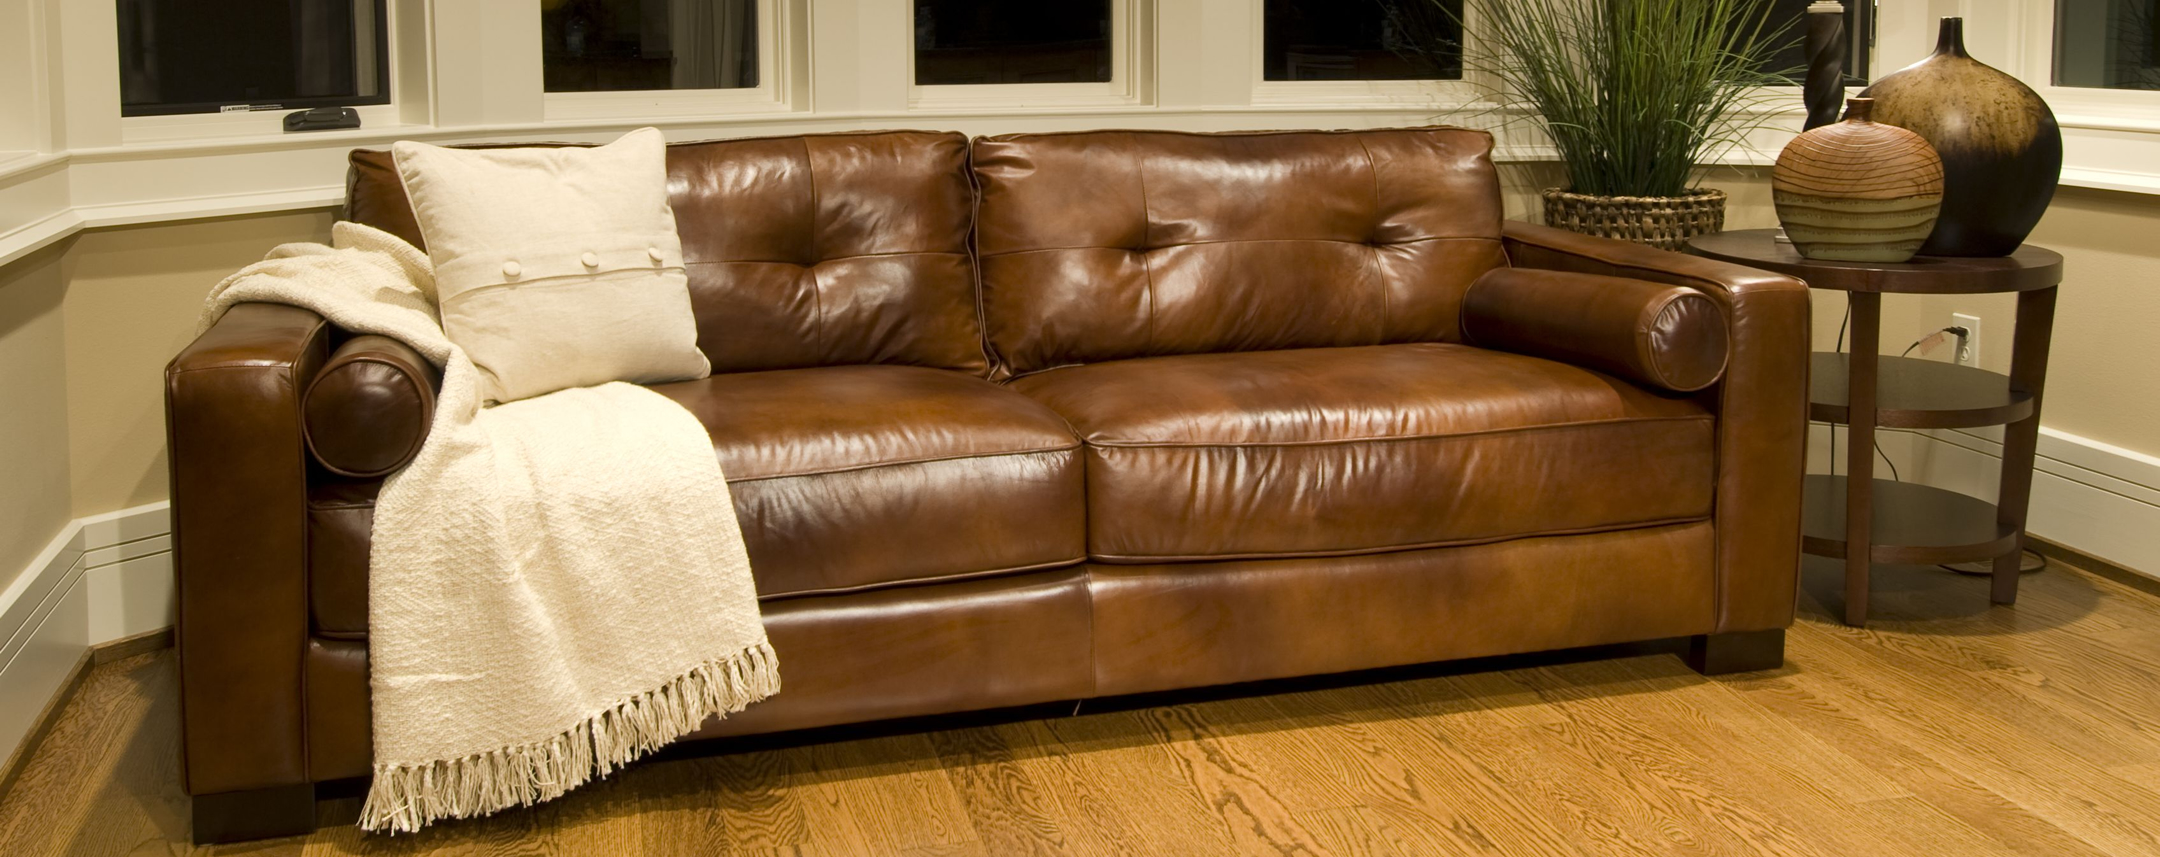 Leather Sofa Decoration Designs Guide